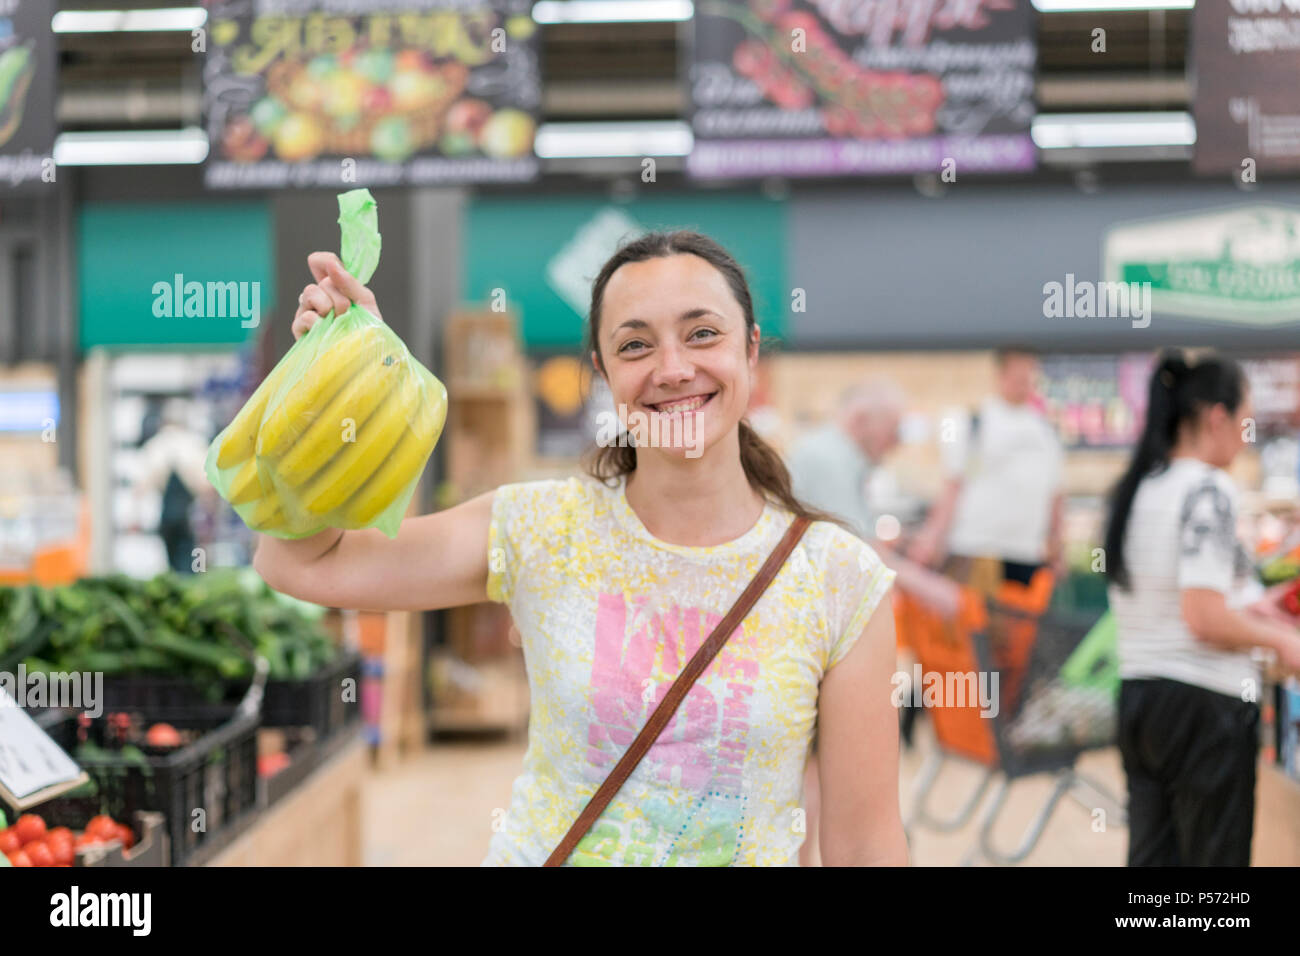 Happy girl bought bananas in the store. Smiling woman with bananas in hand. Blurry. - Stock Image